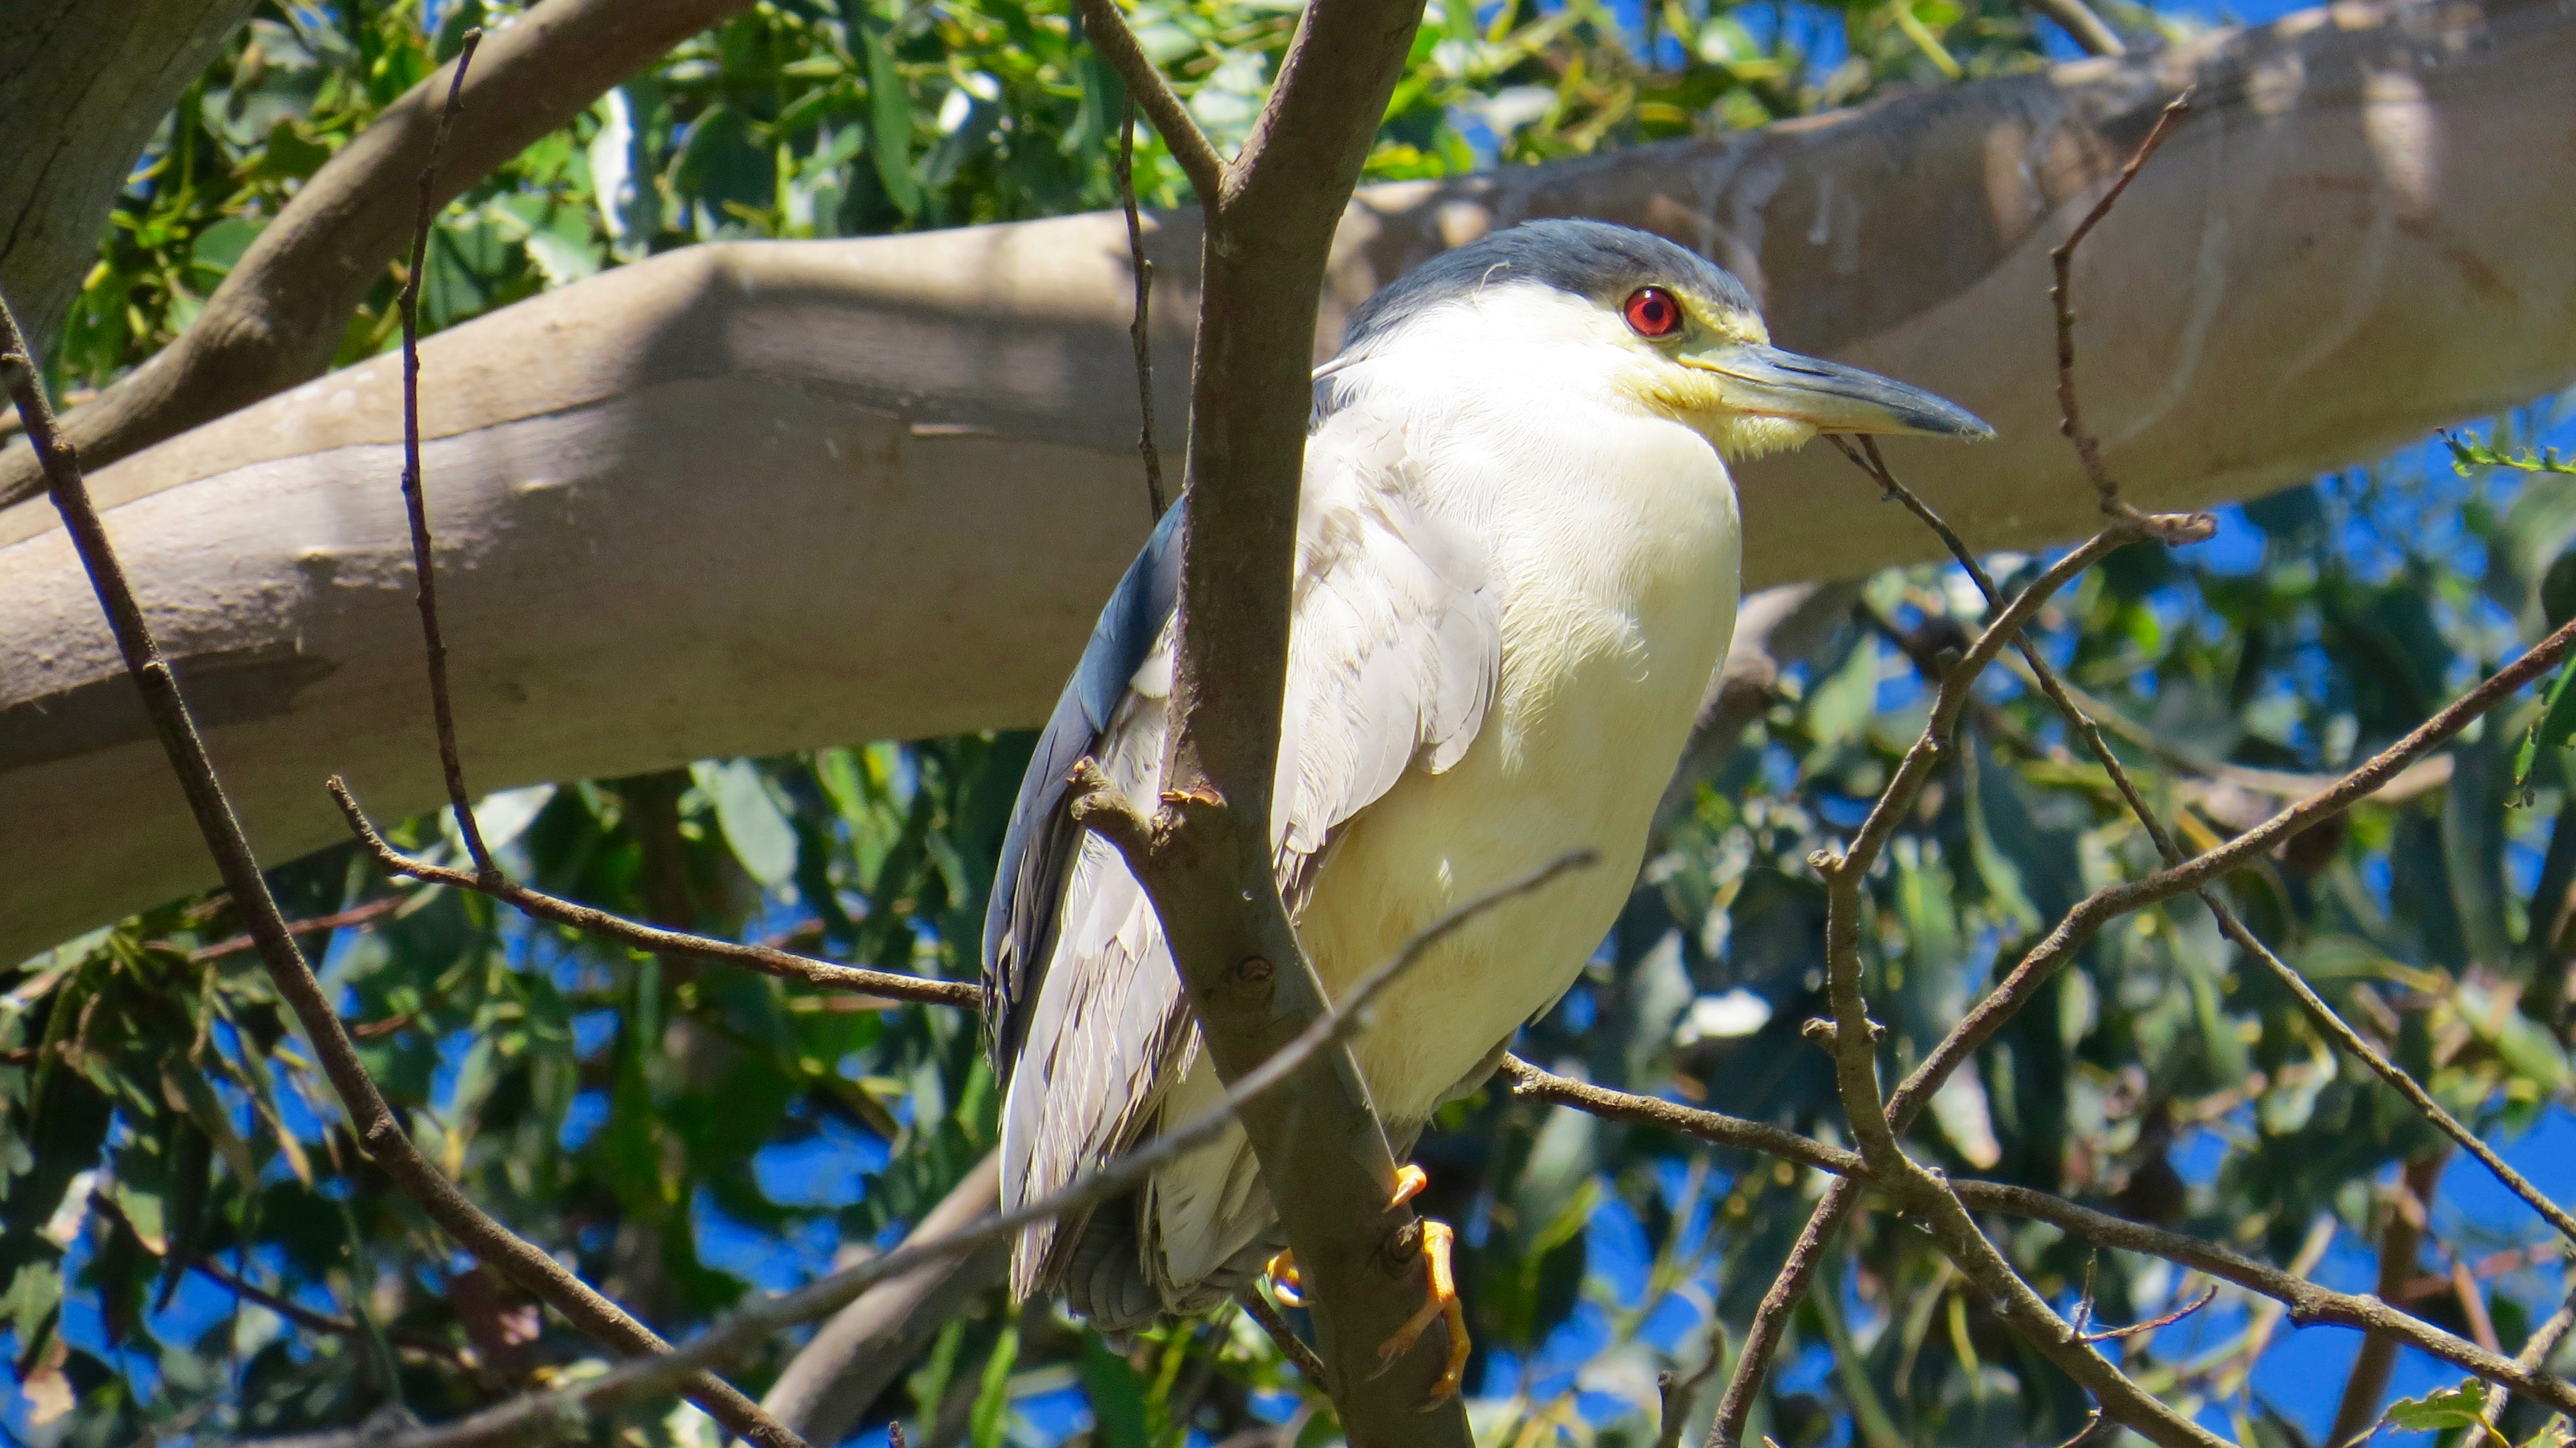 The Black-crowned Night Heron hangs out during the day and forages at night.